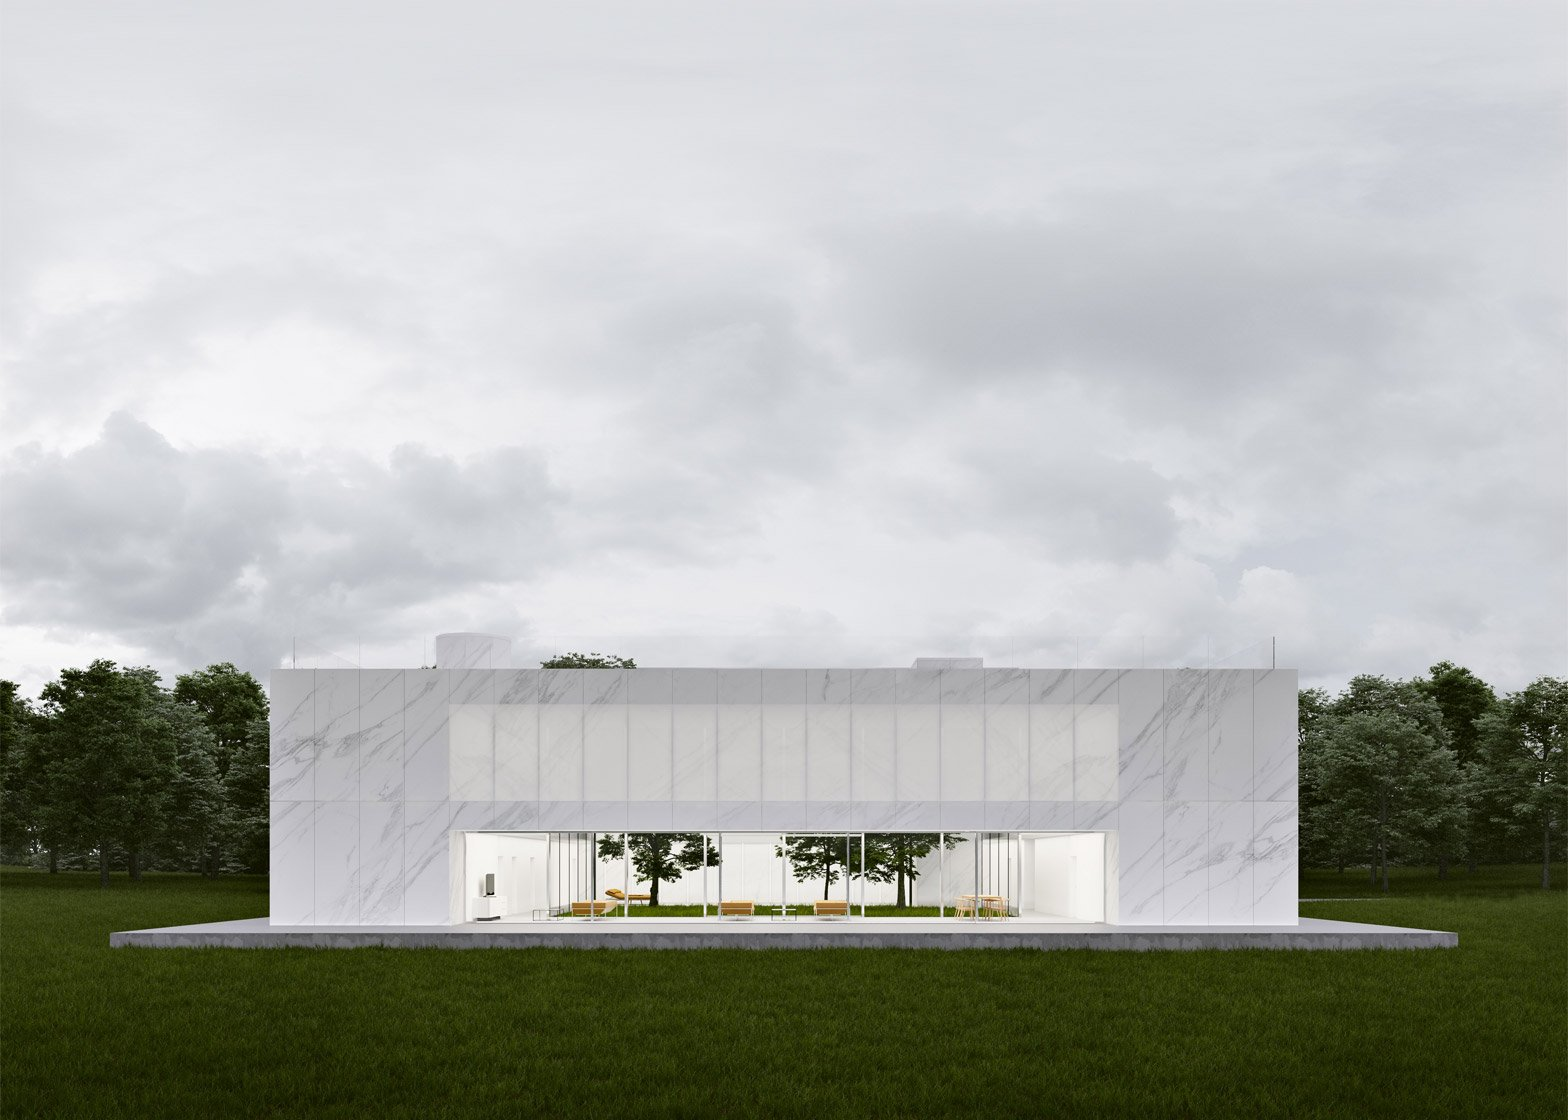 Modern Mansion By Maciej Grelewicz For Design A Beautiful House Competition